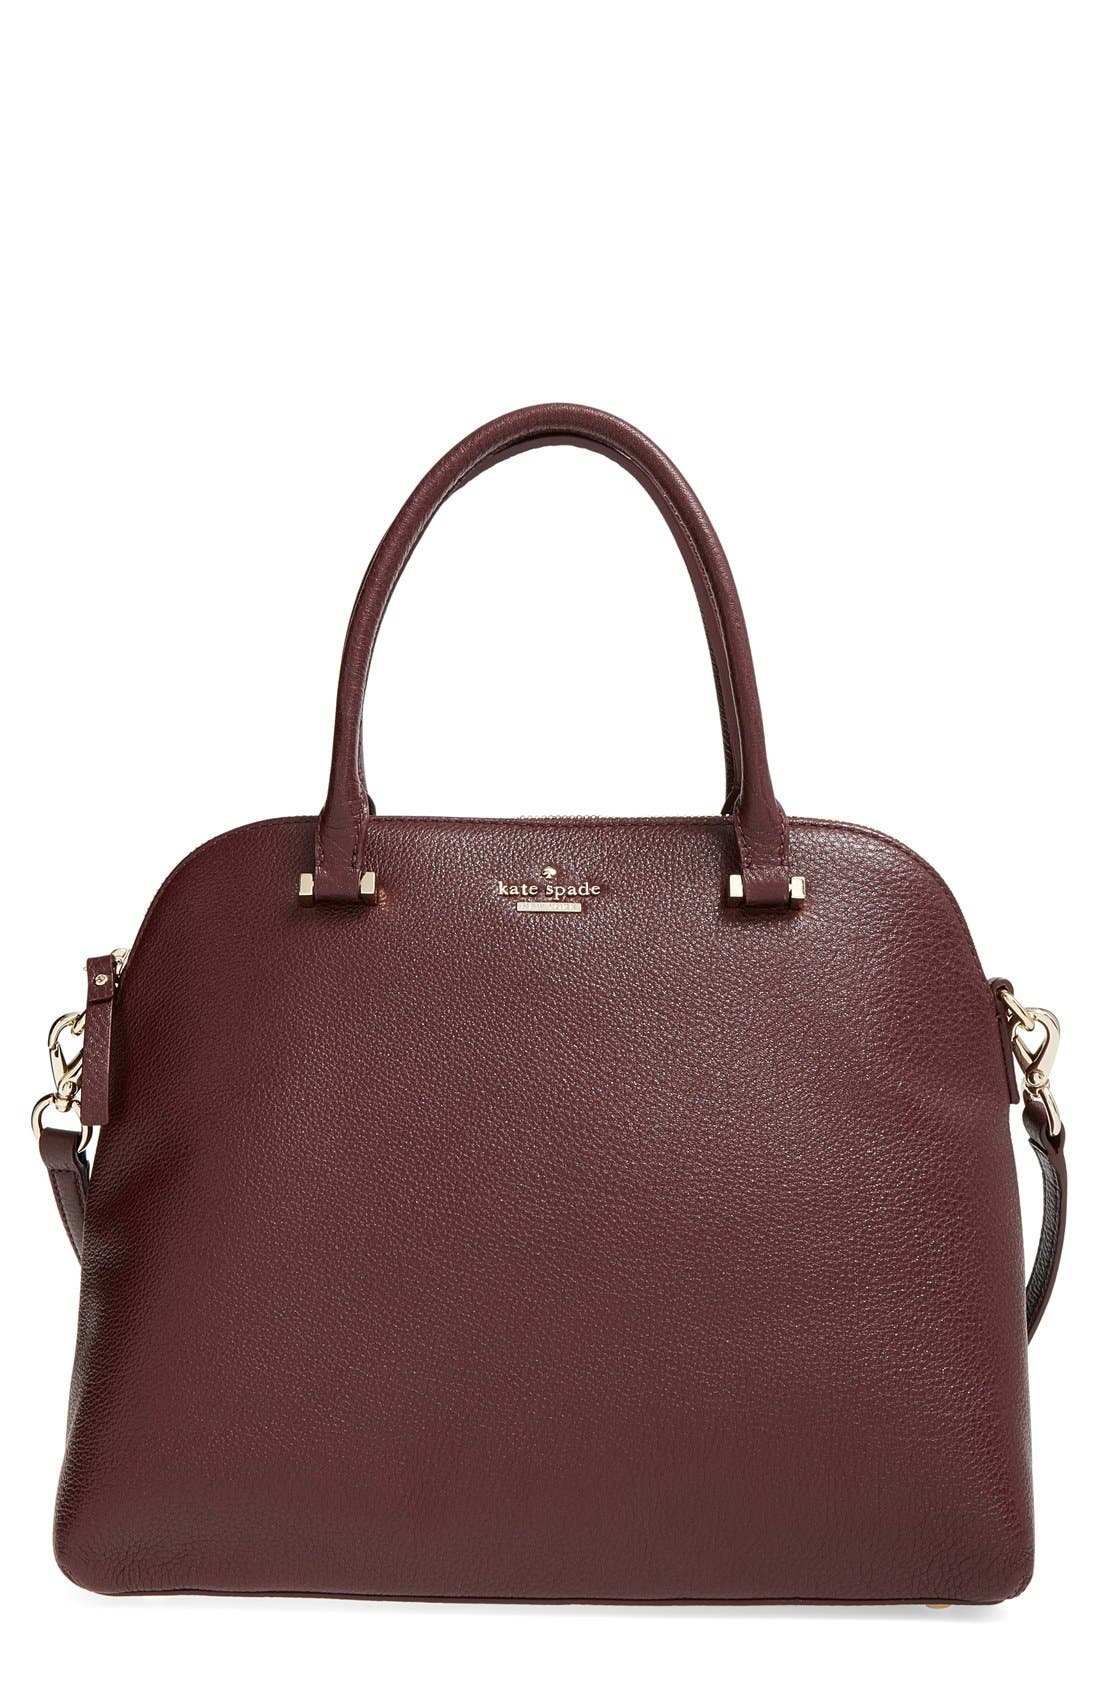 Main Image - kate spade new york 'emerson place - margot' satchel